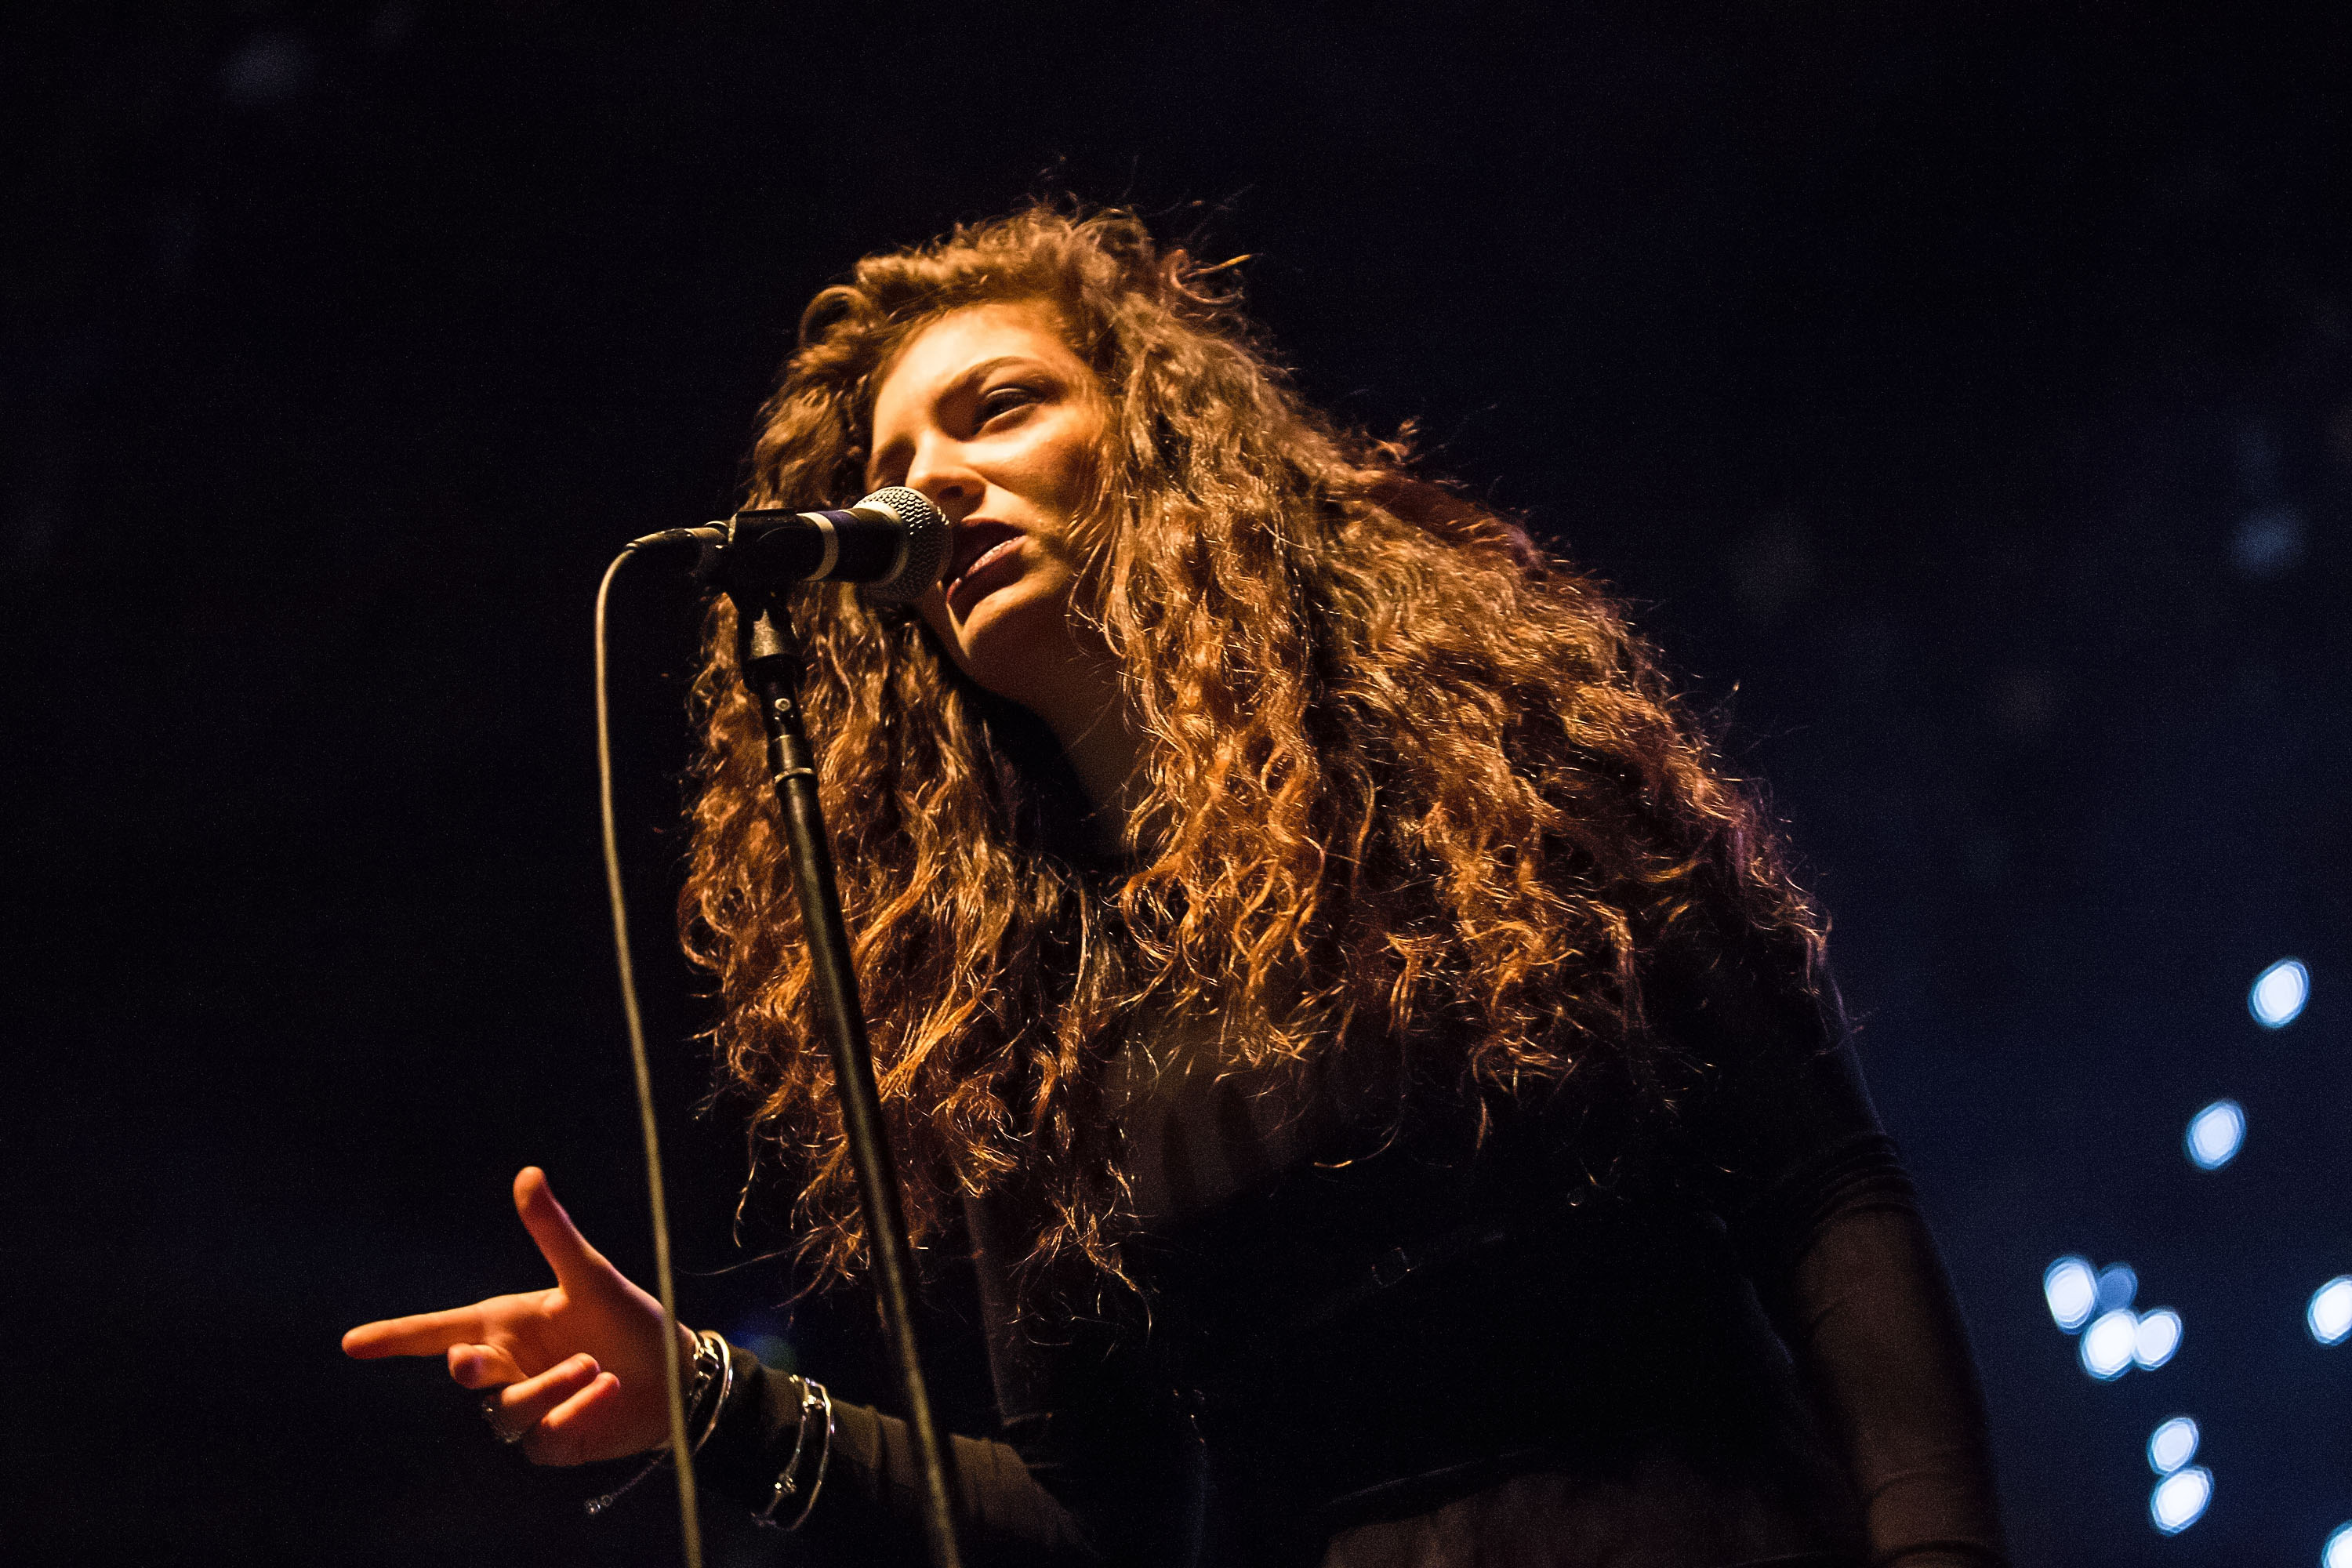 Lorde To Perform At Grammy Nominations Show With Katy Perry & Taylor Swift